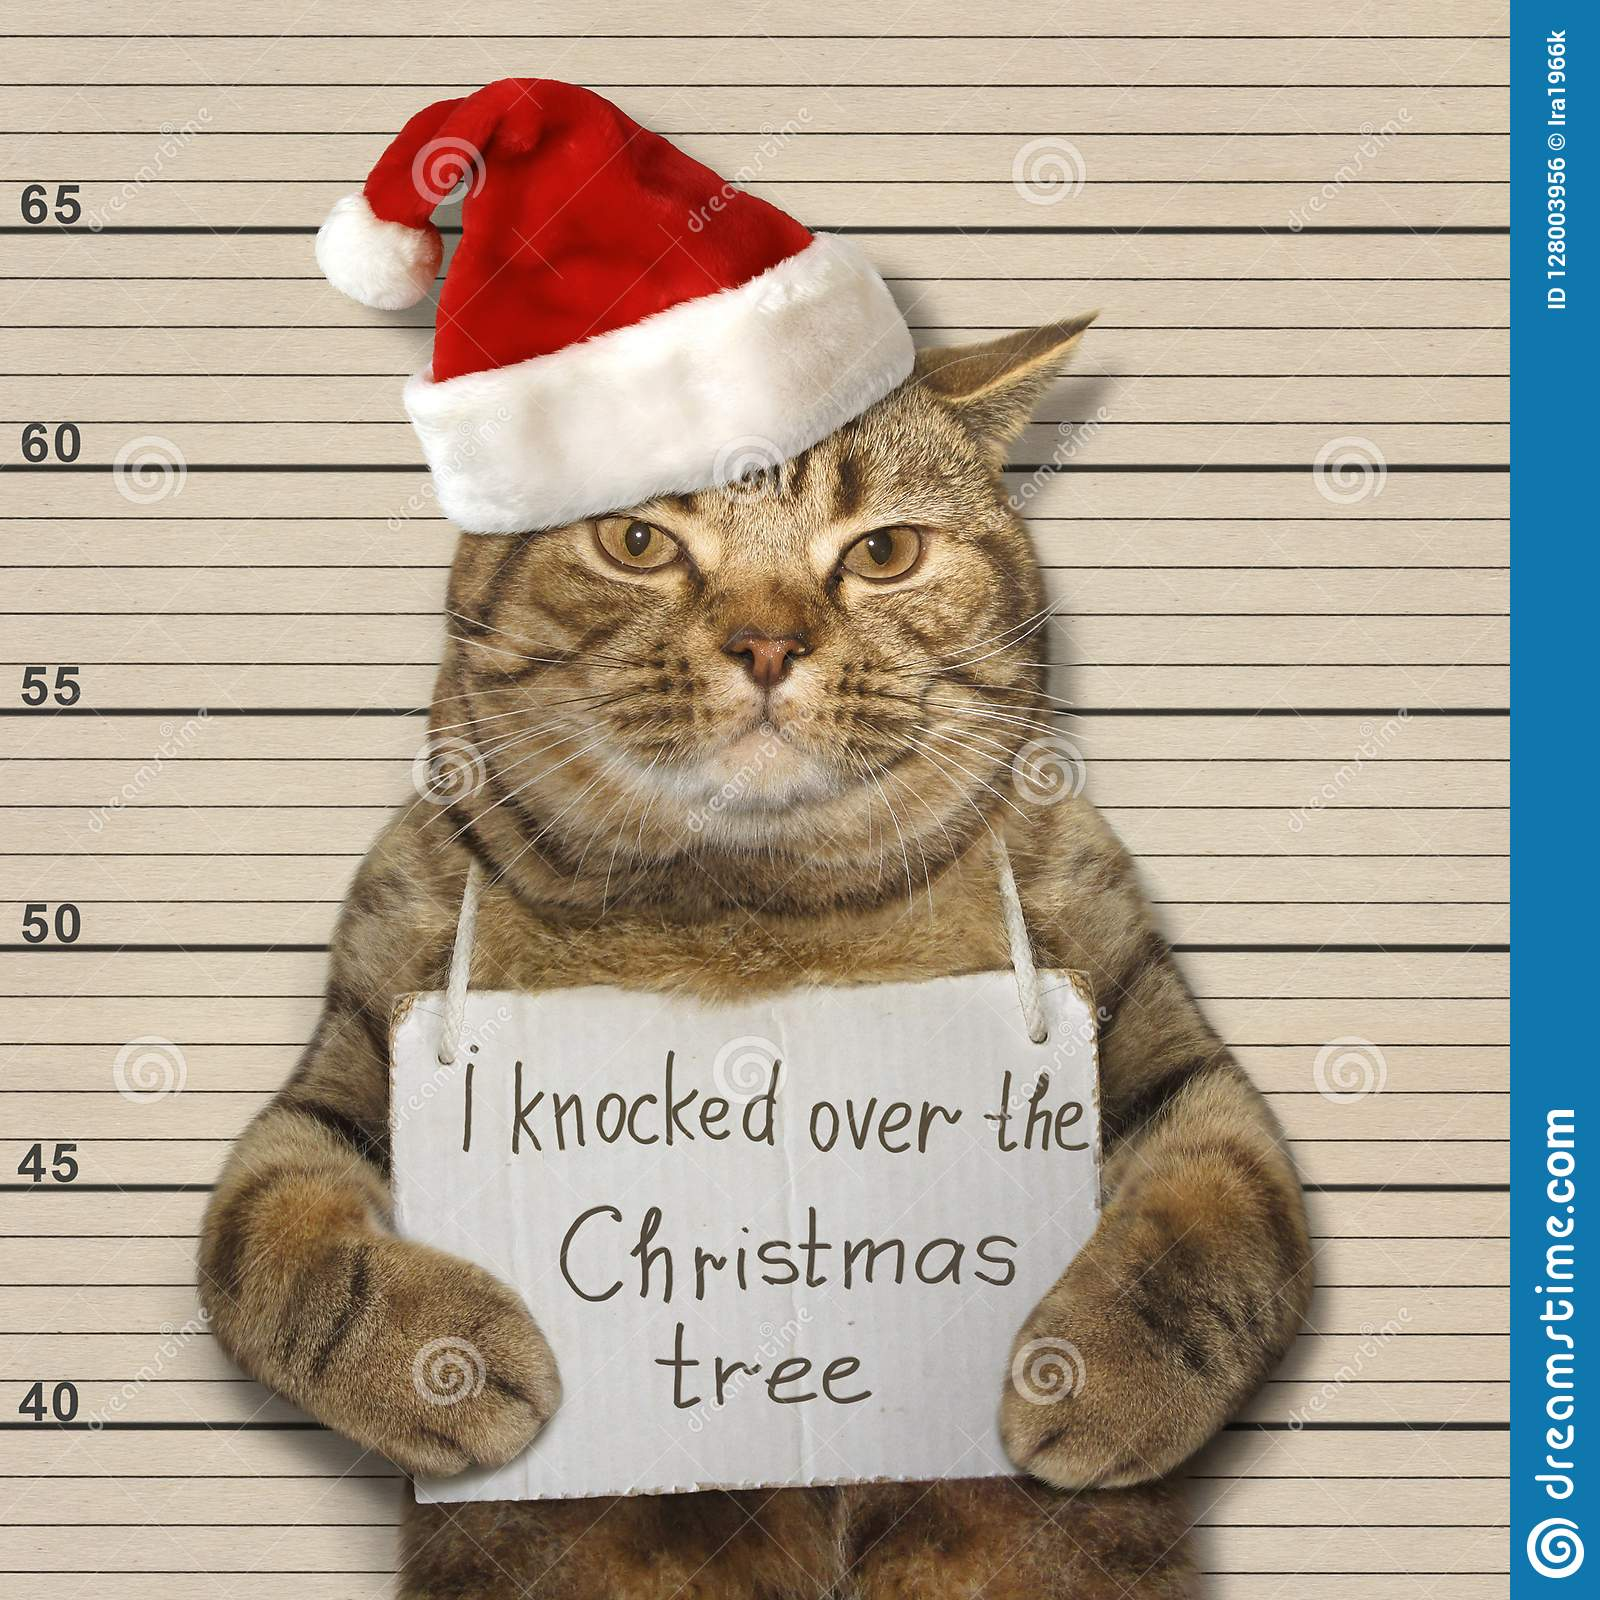 Cat Christmas.Bad Cat And Christmas Tree Stock Photo Image Of Year